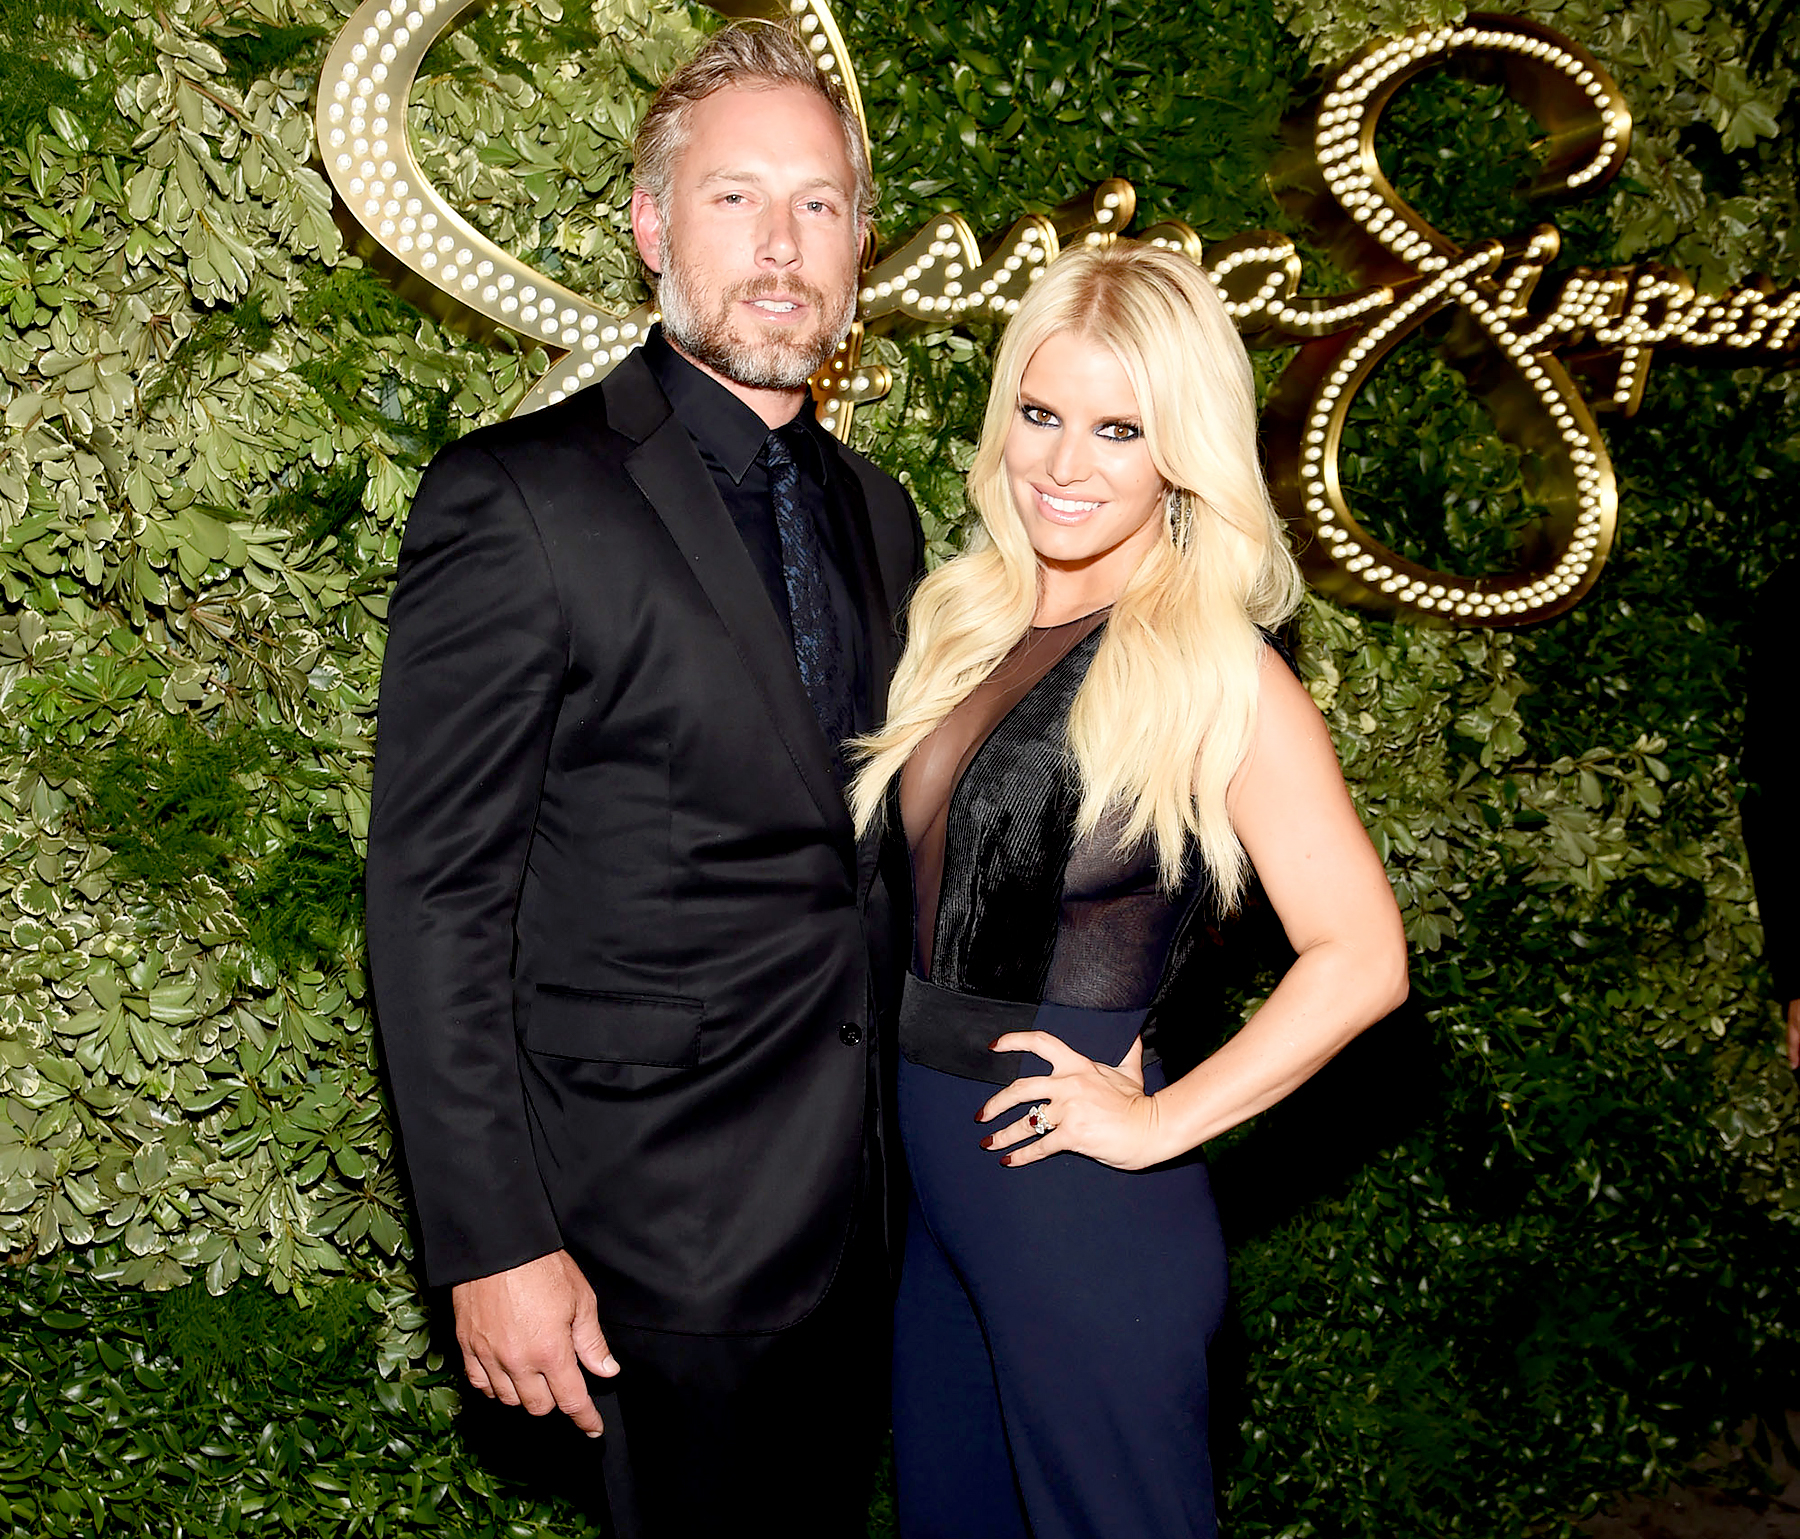 Eric Johnson and Jessica Simpson attend the 10th Anniversary Celebration of the Jessica Simpson Collection at Tavern on the Green on September 9, 2015 in New York City.